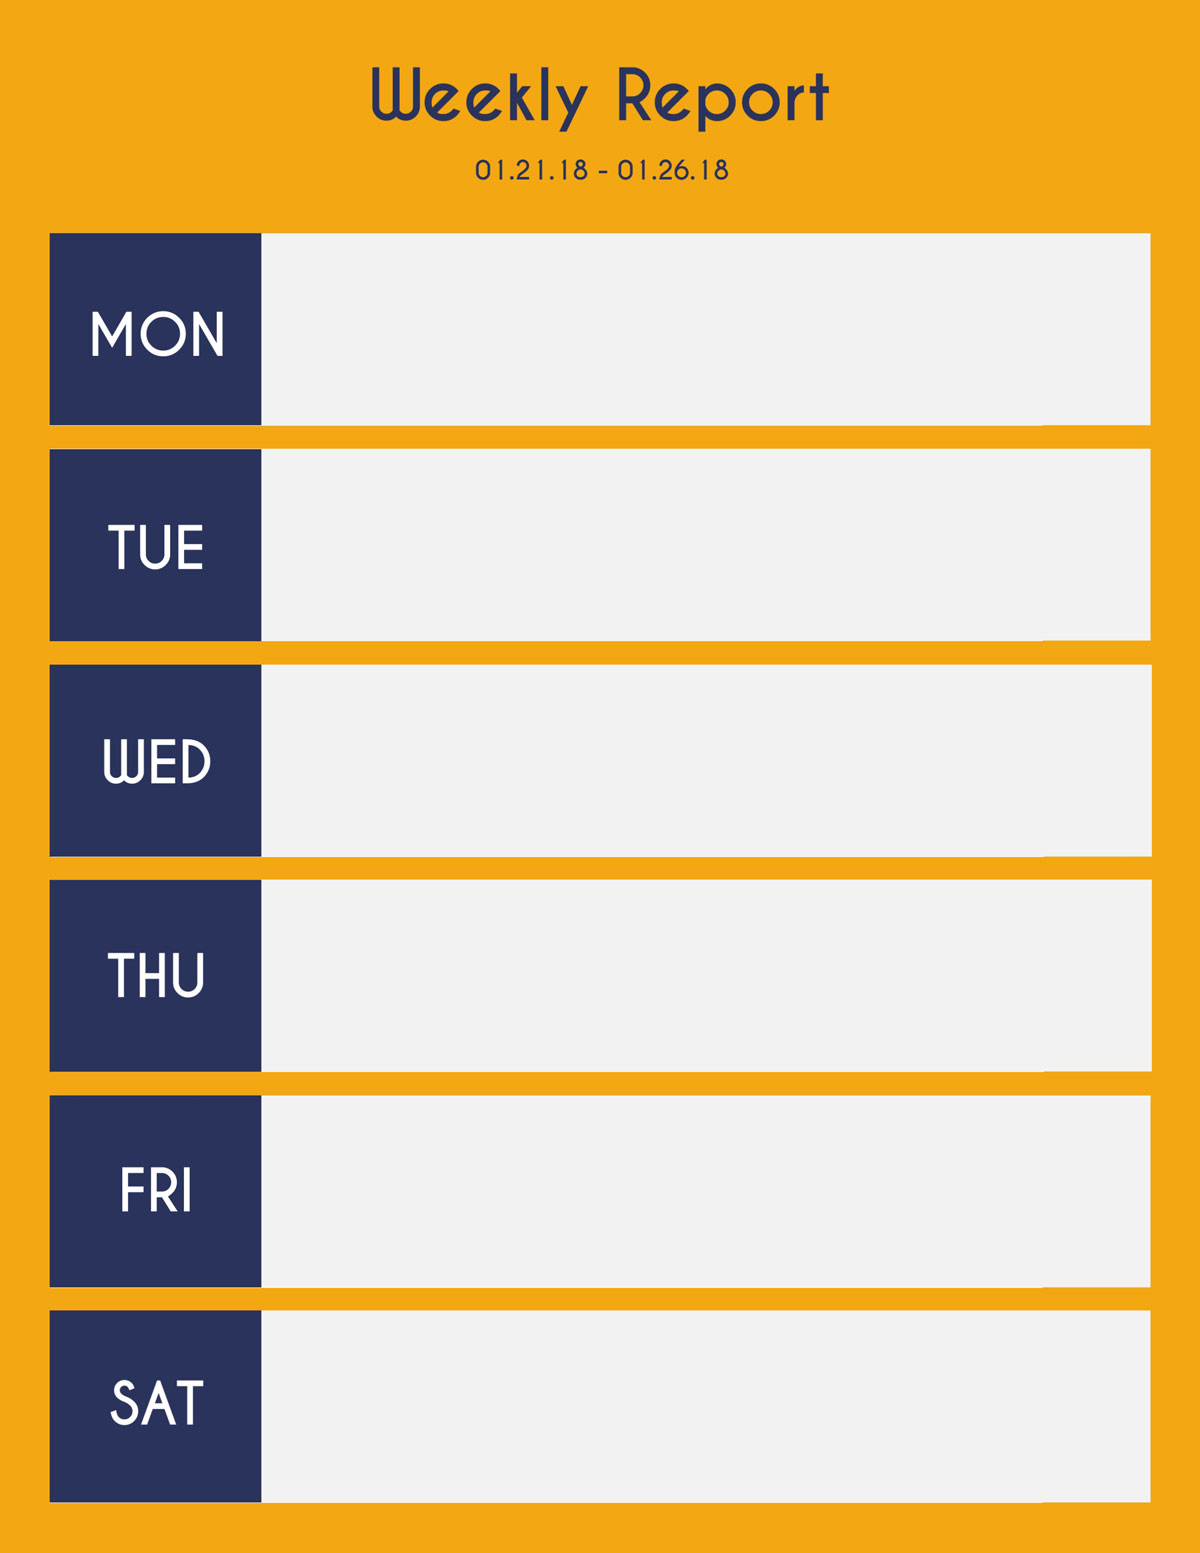 A basic yellow and blue weekly report template available in Visme.